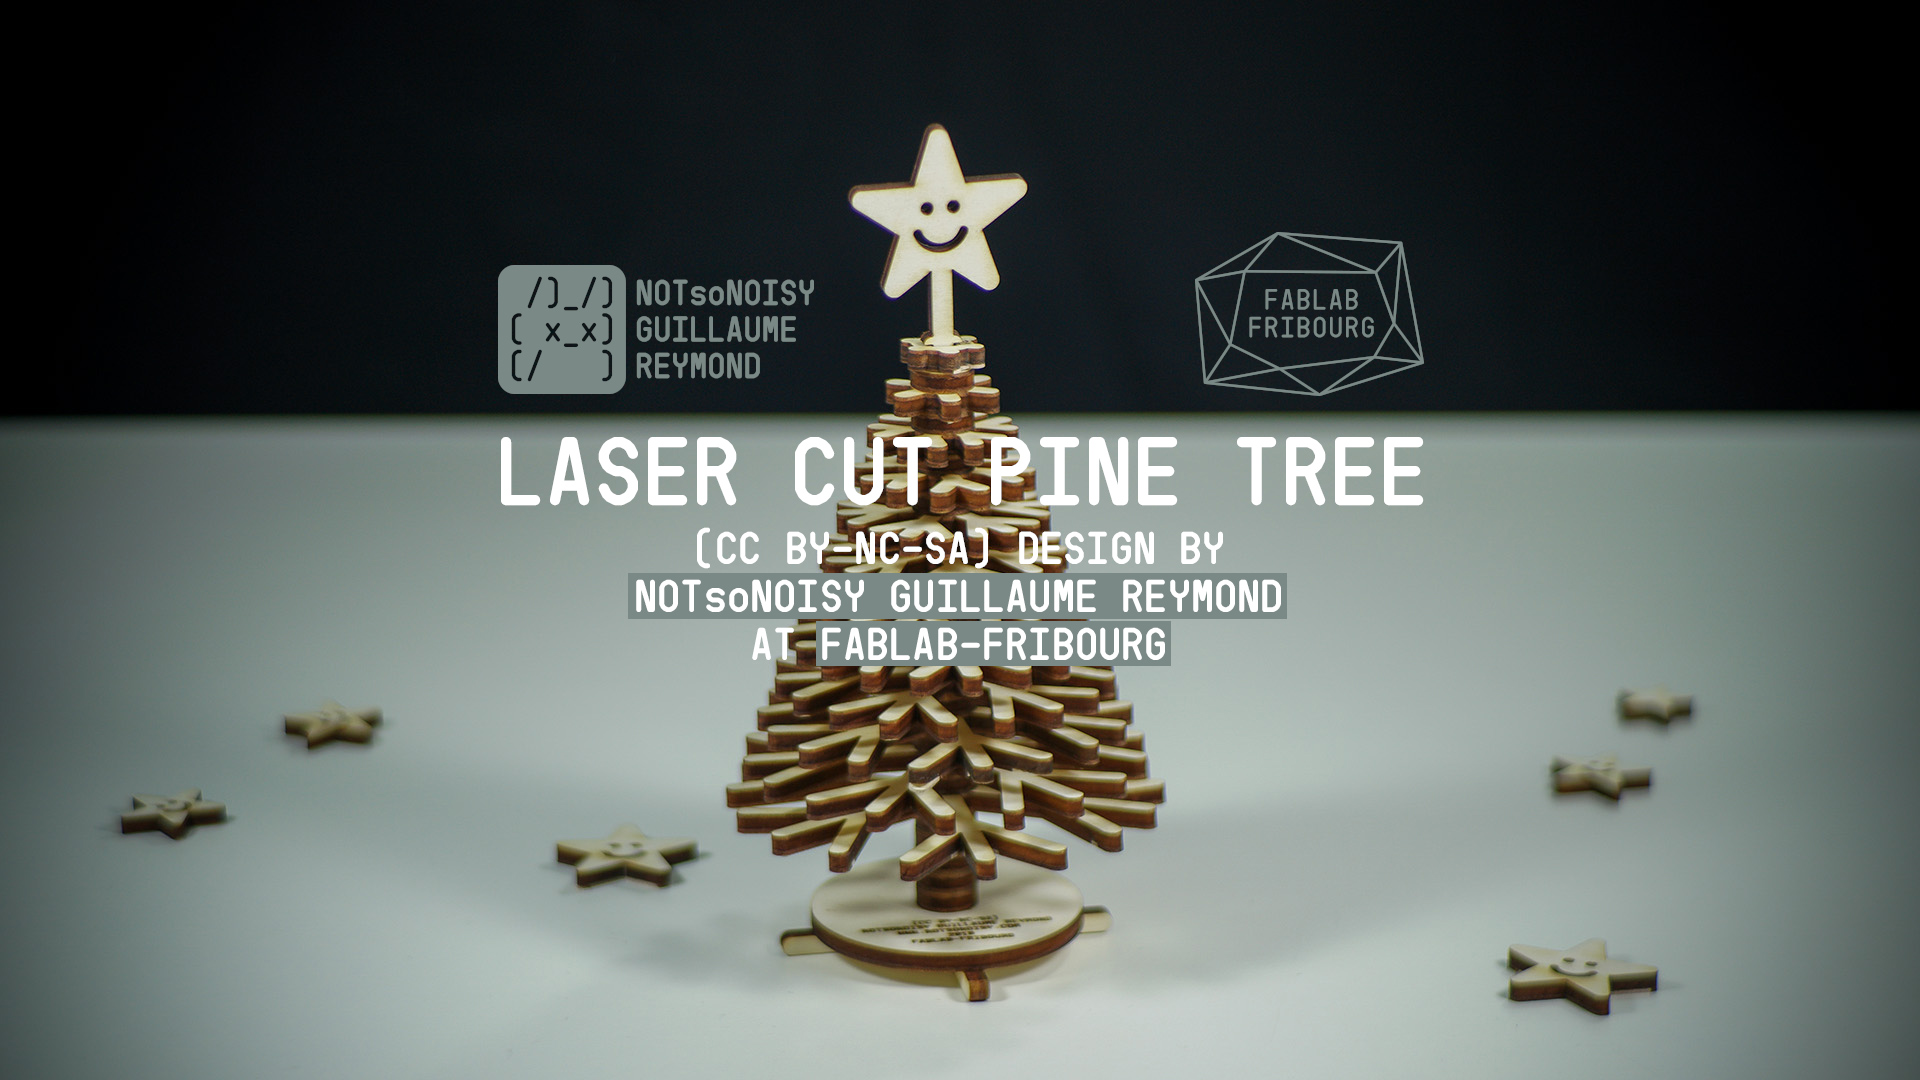 Christmas laser-cut Pine tree